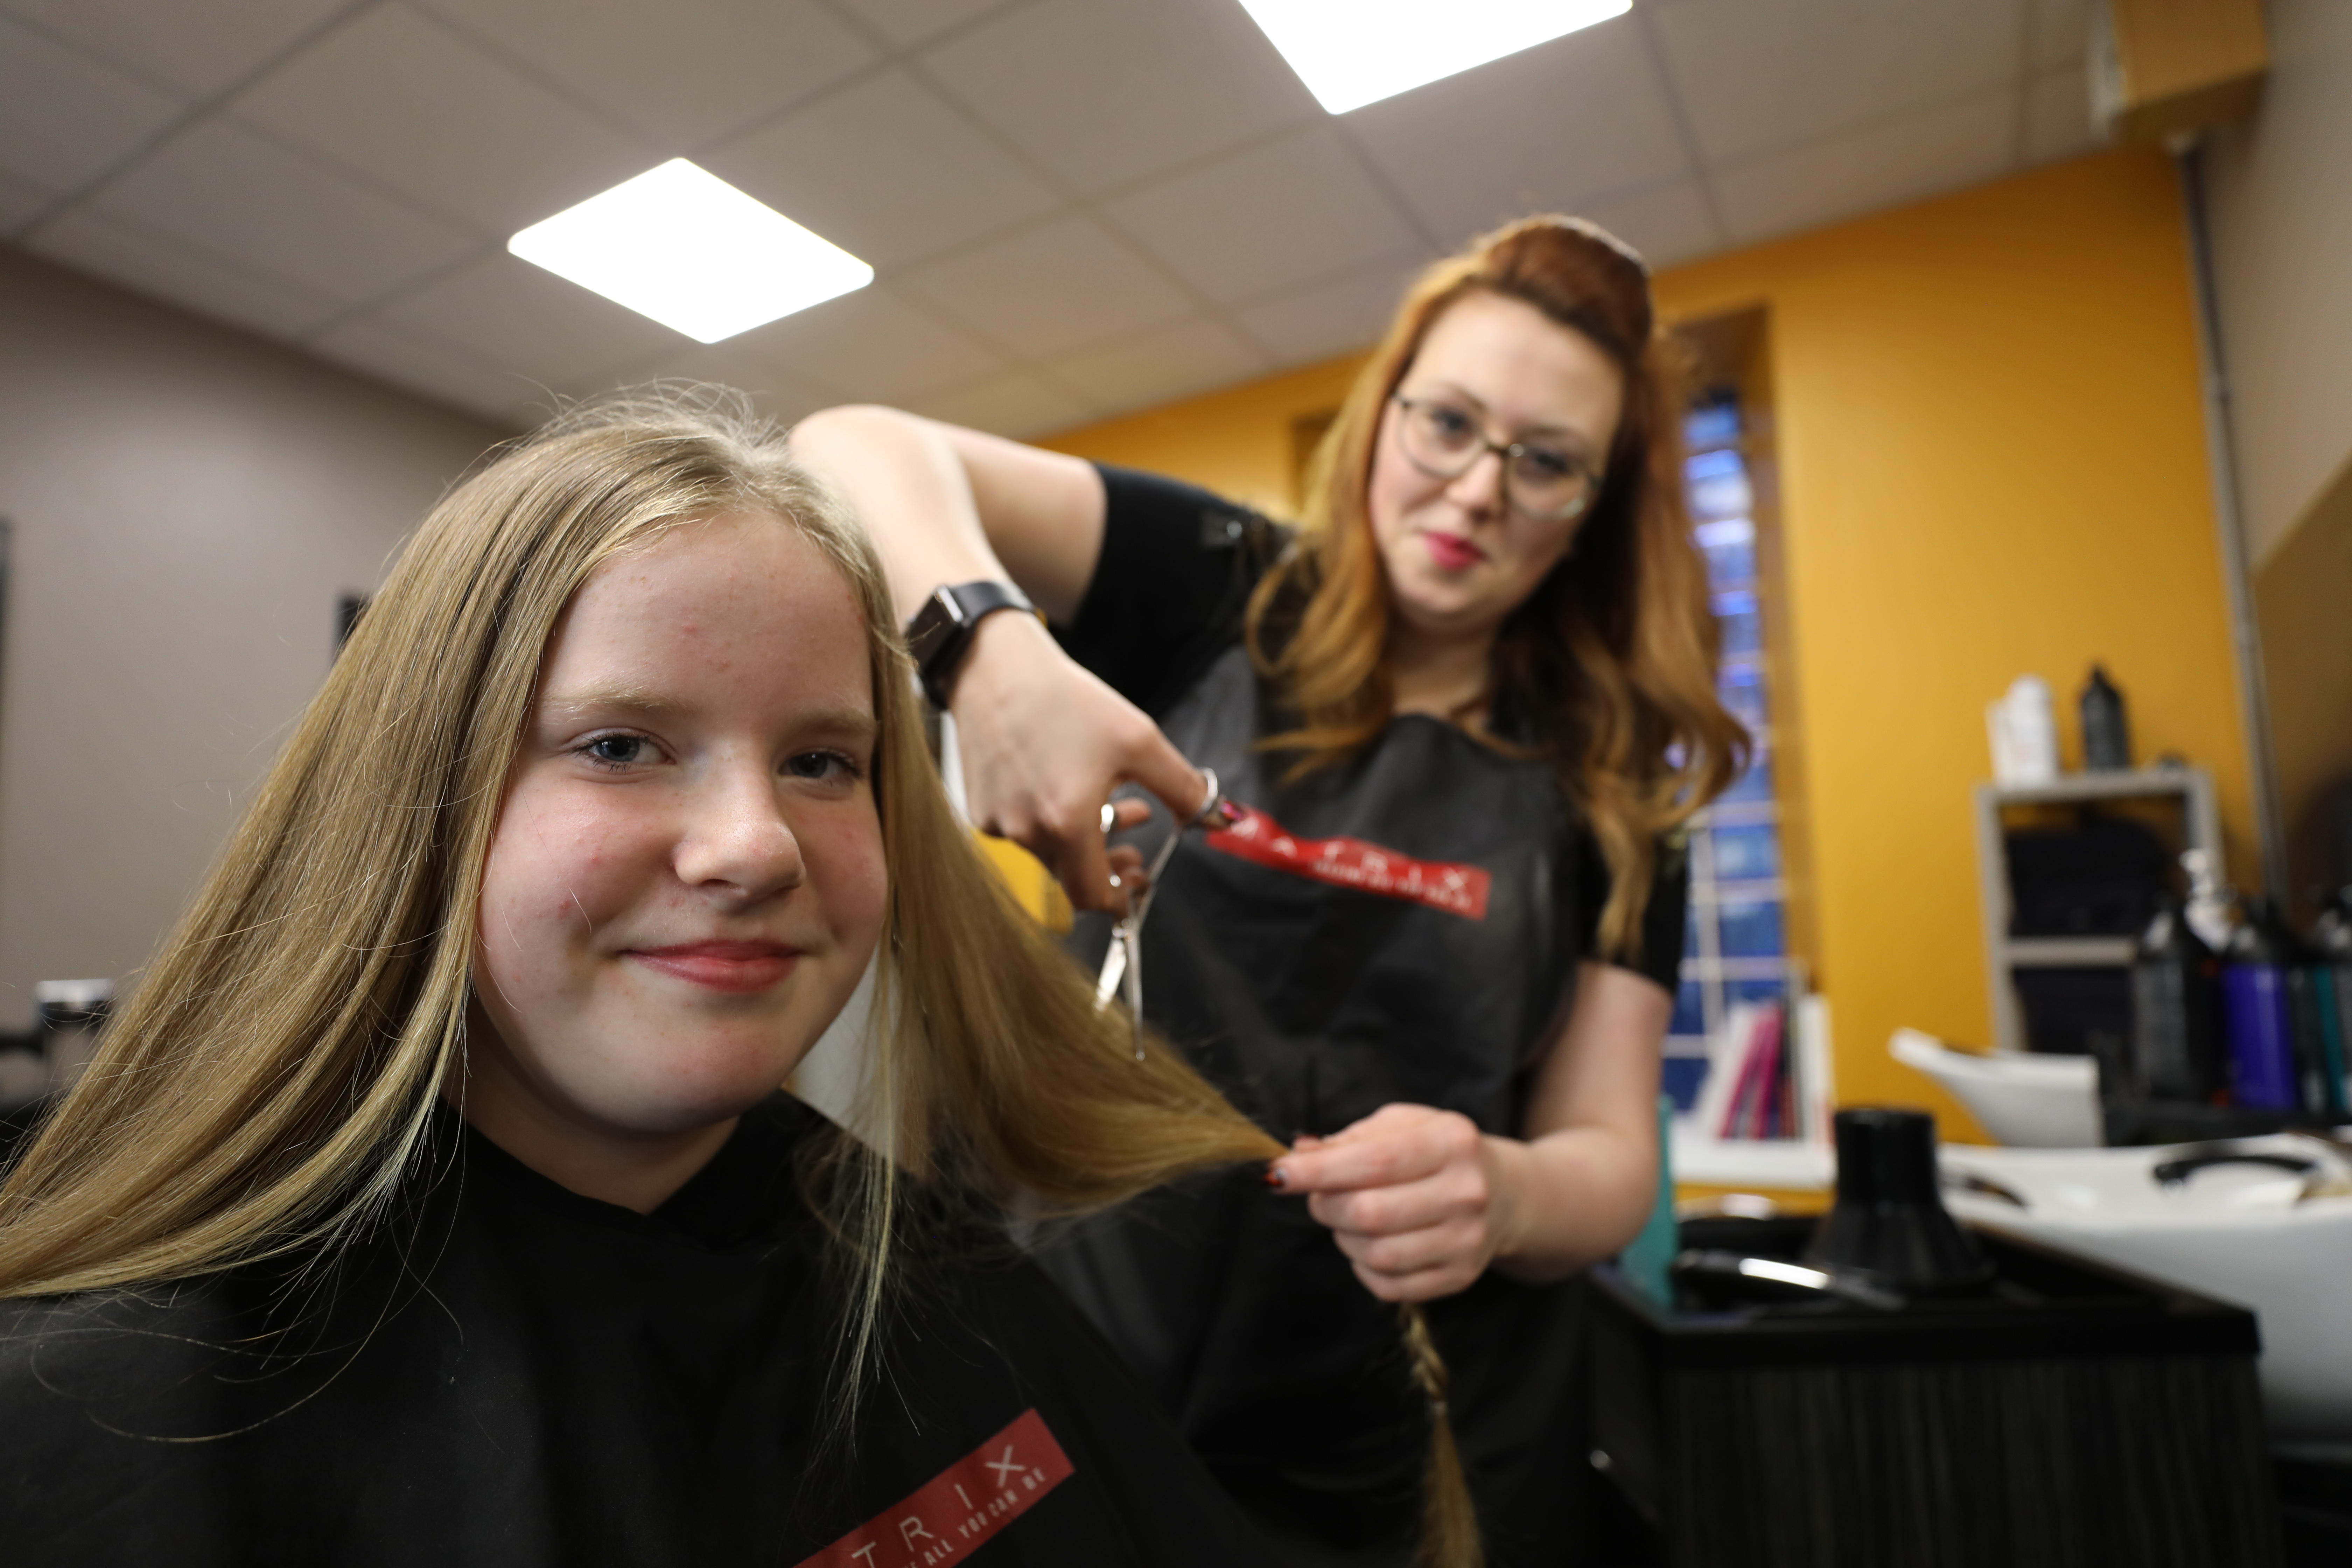 Katelyn Clark had 10 to 12 inches of her hair cut in order to be sent away to make wigs for children and young adults who have suffered with illness which has resulted in them losing their hair.